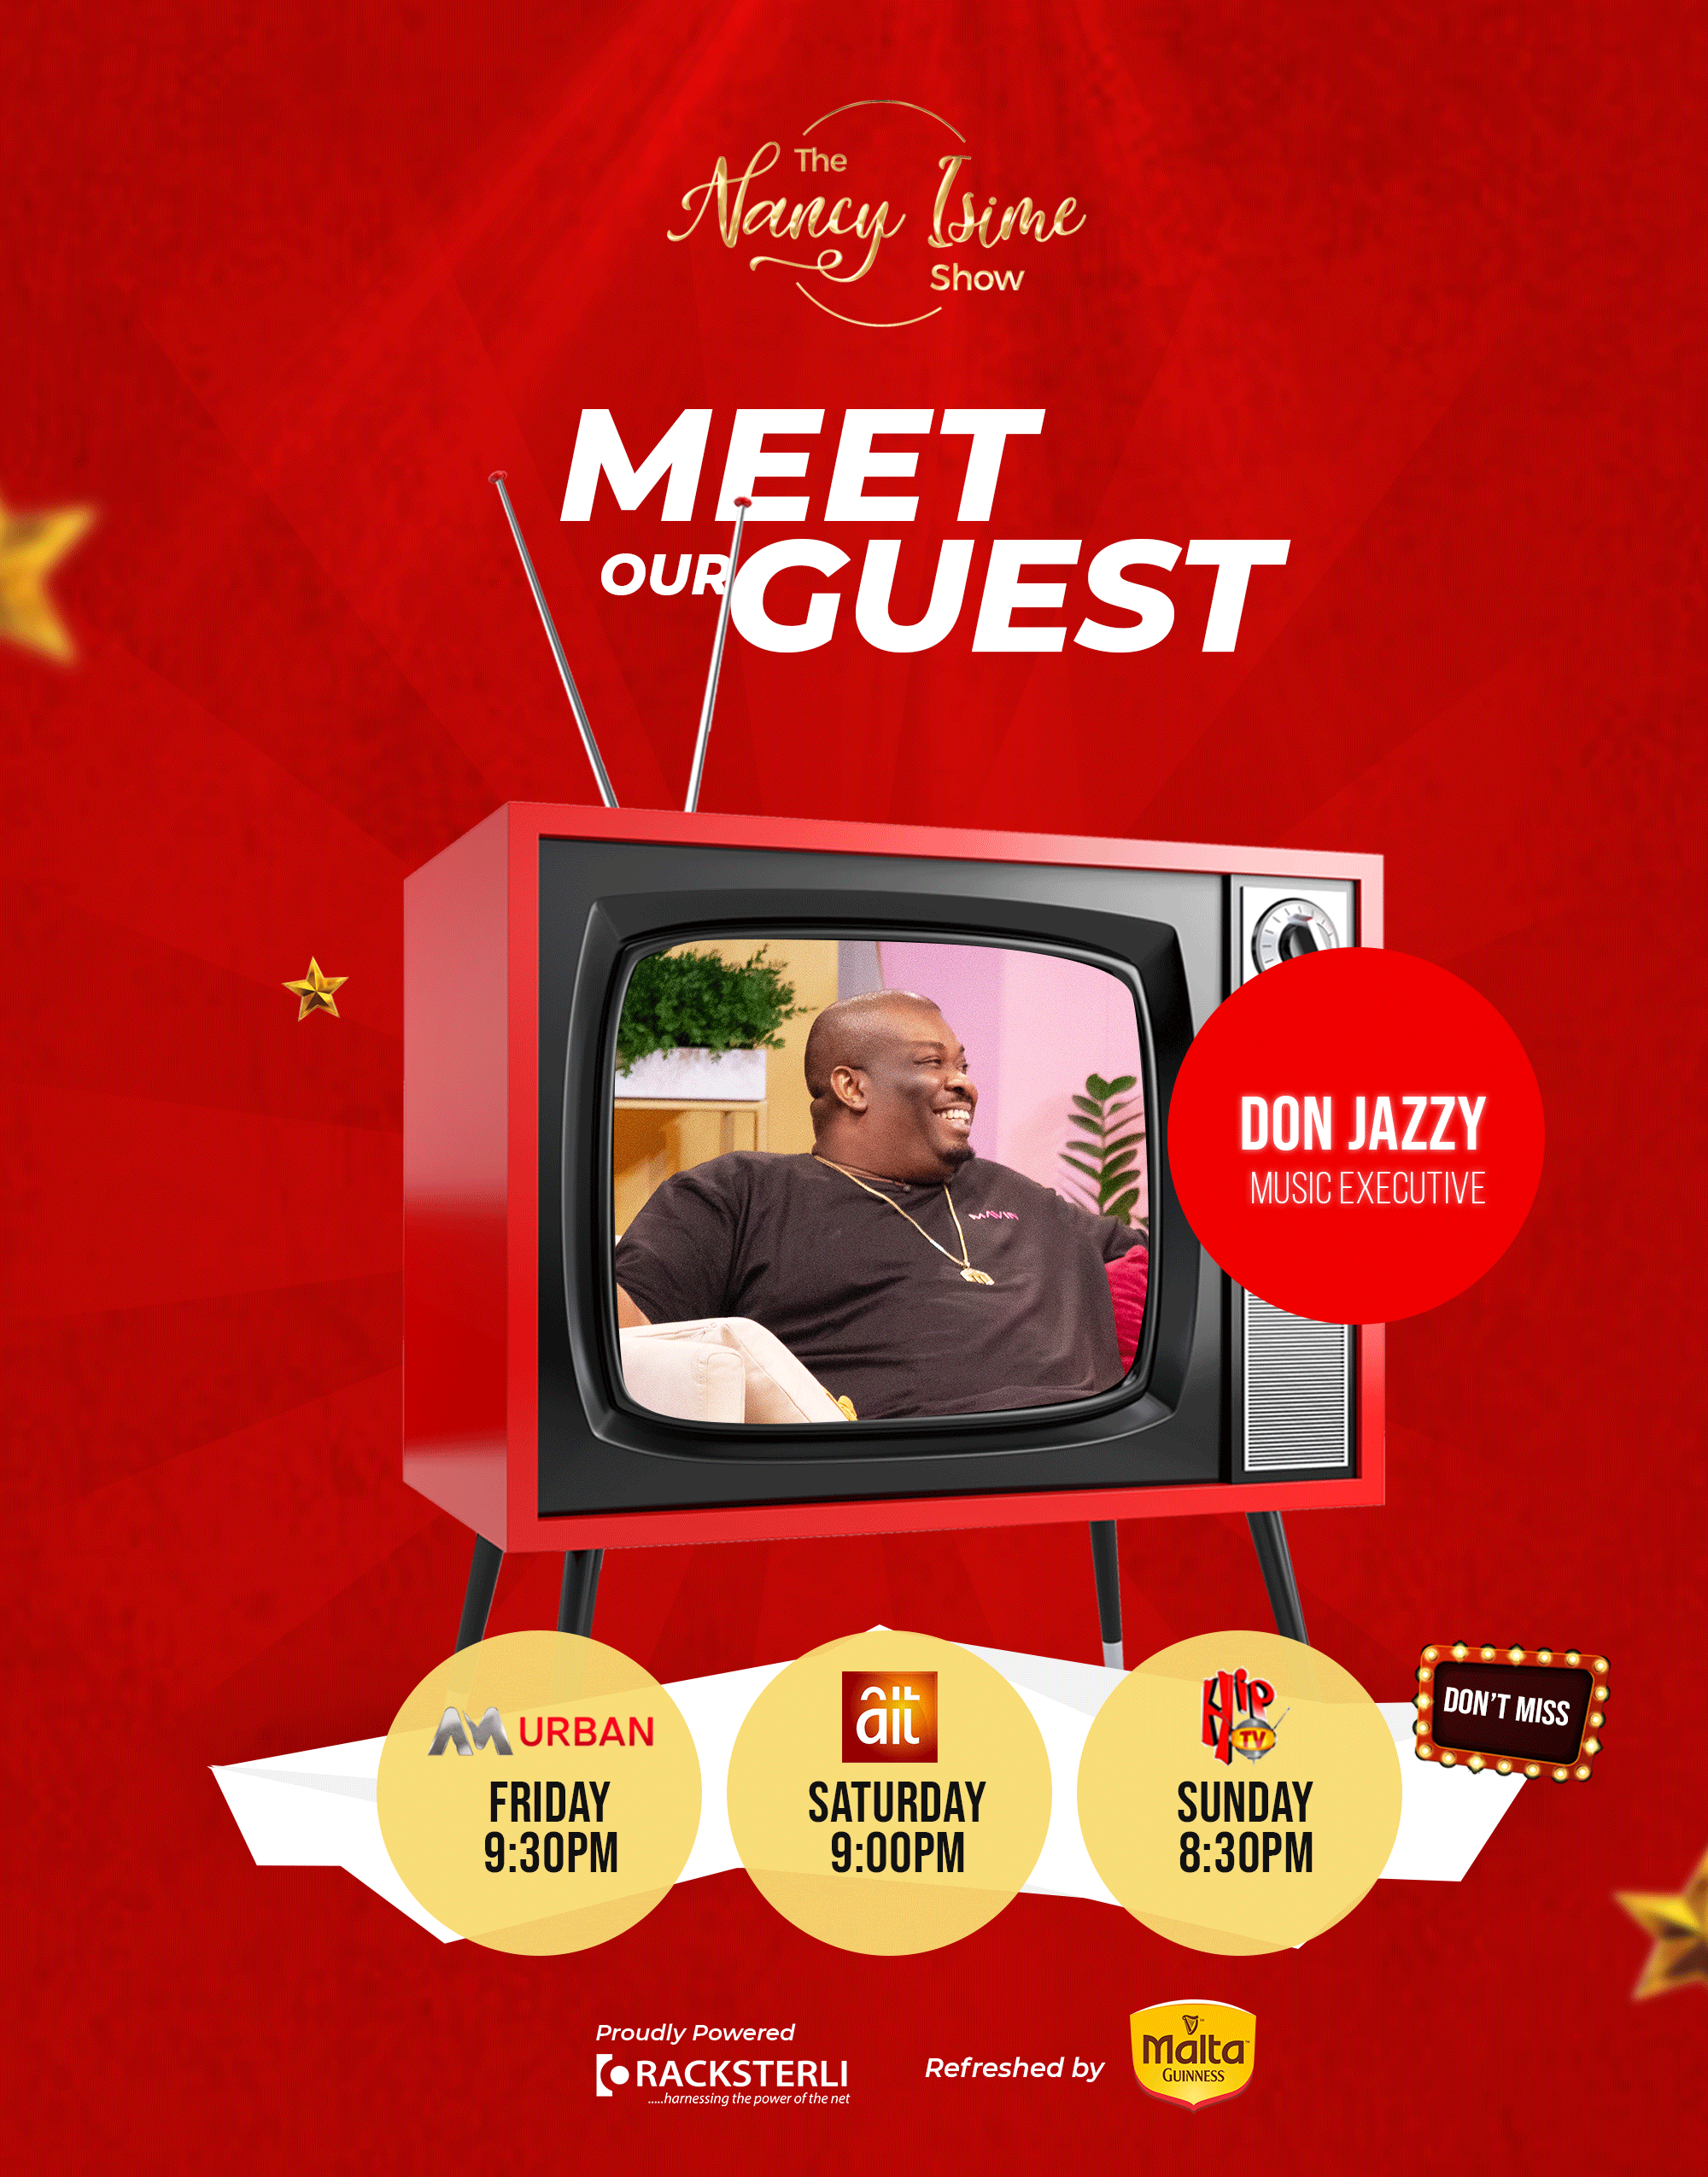 Don Jazzy Revealed as First Guest on The Nancy Isime Show Season 2